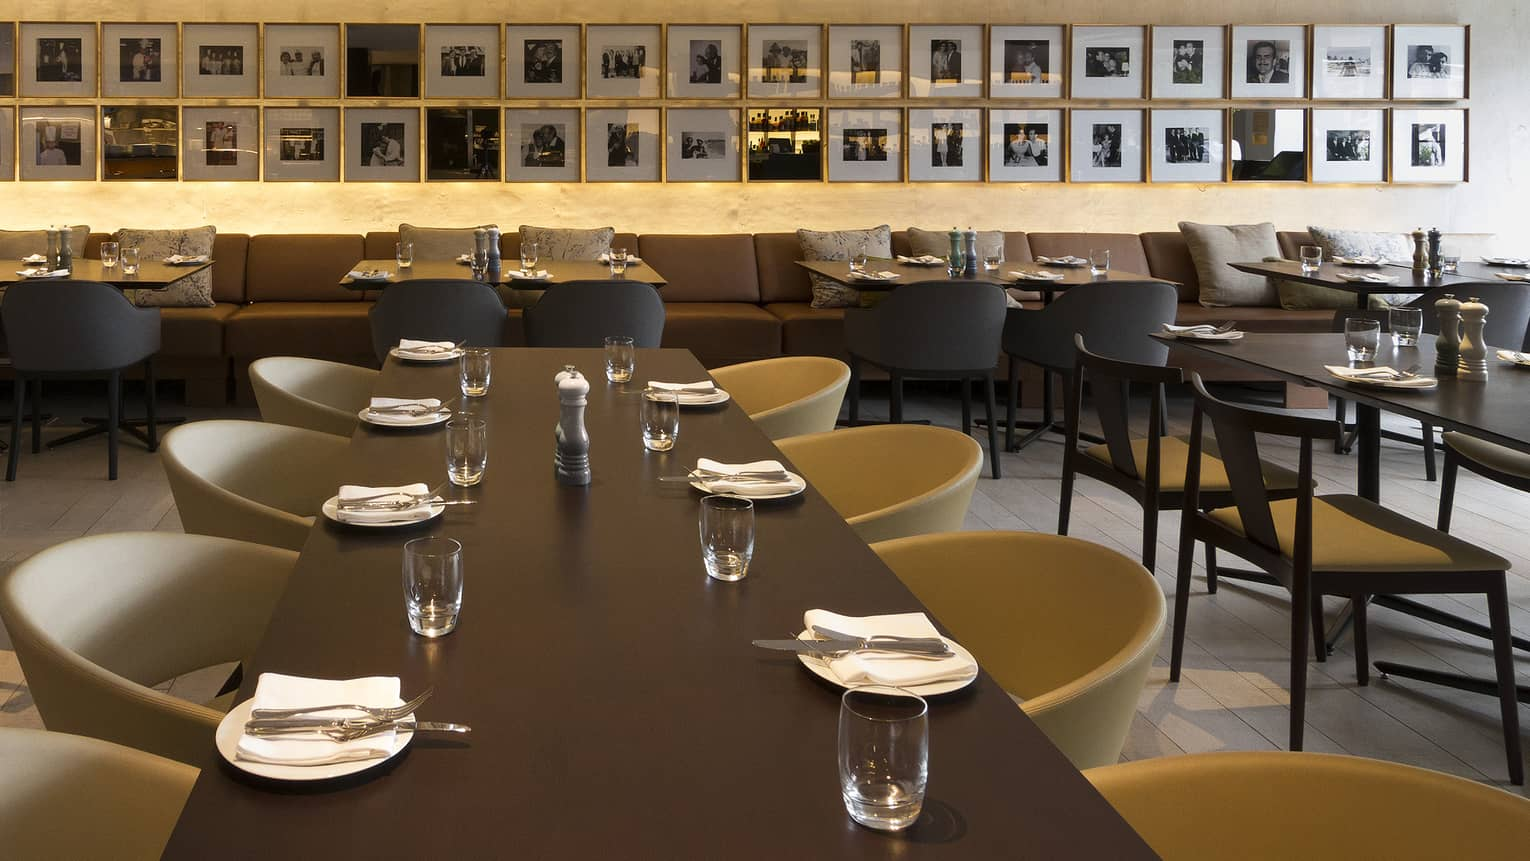 Black and white photographs line the wall, tables are arranged with white napkins